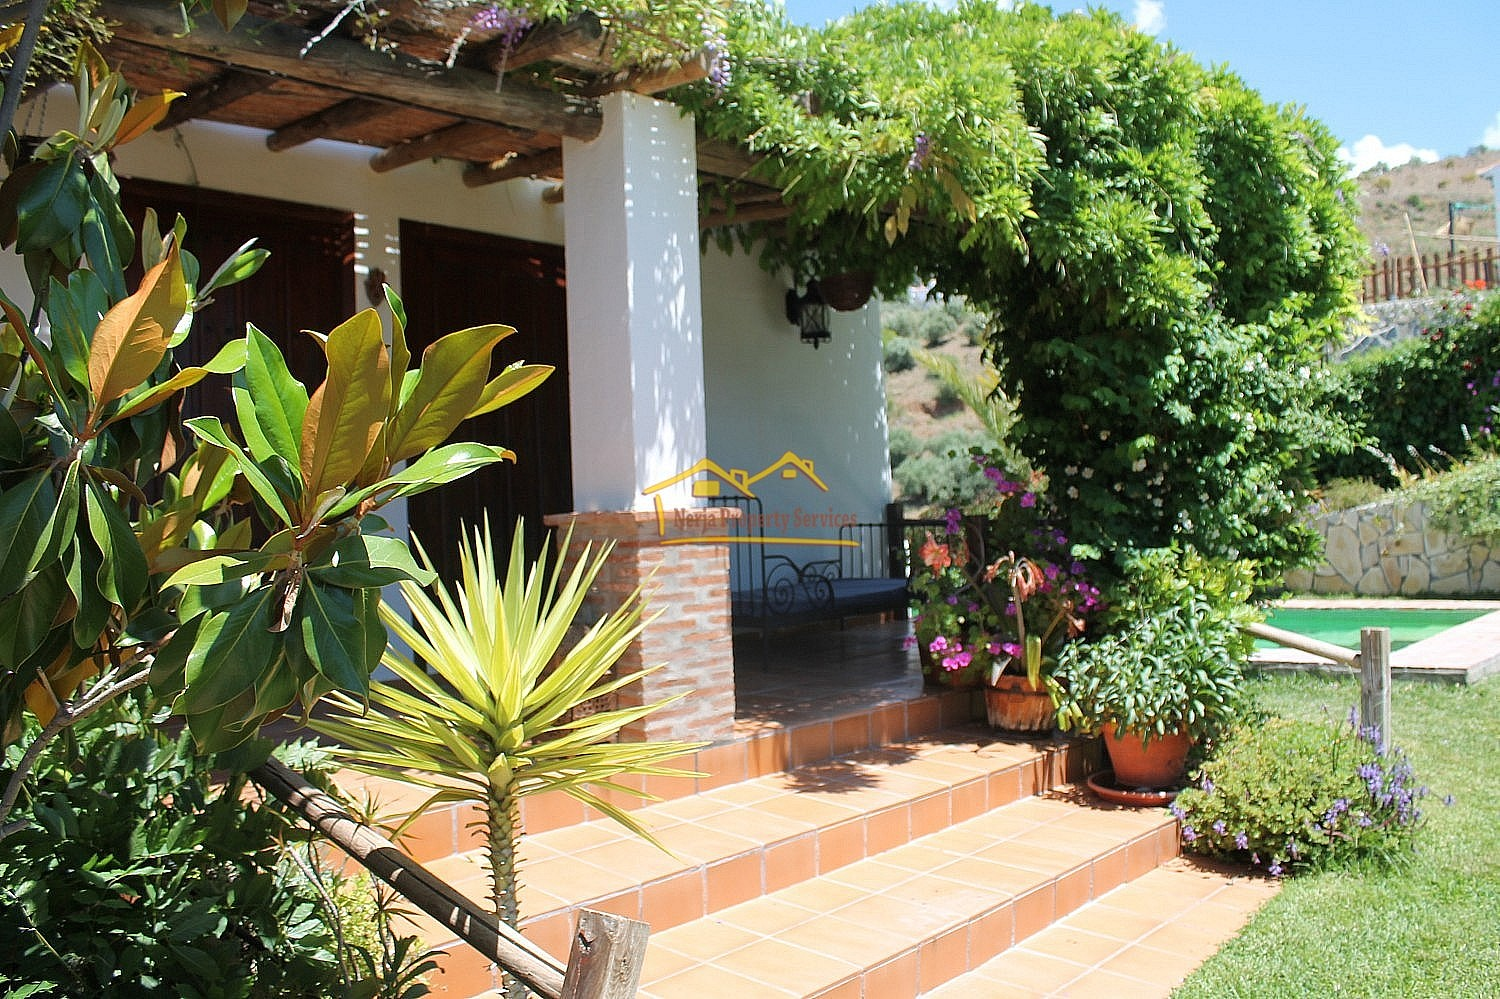 Picture of 2 Bed Village House, Frigiliana, with pool | MNNPSV1620